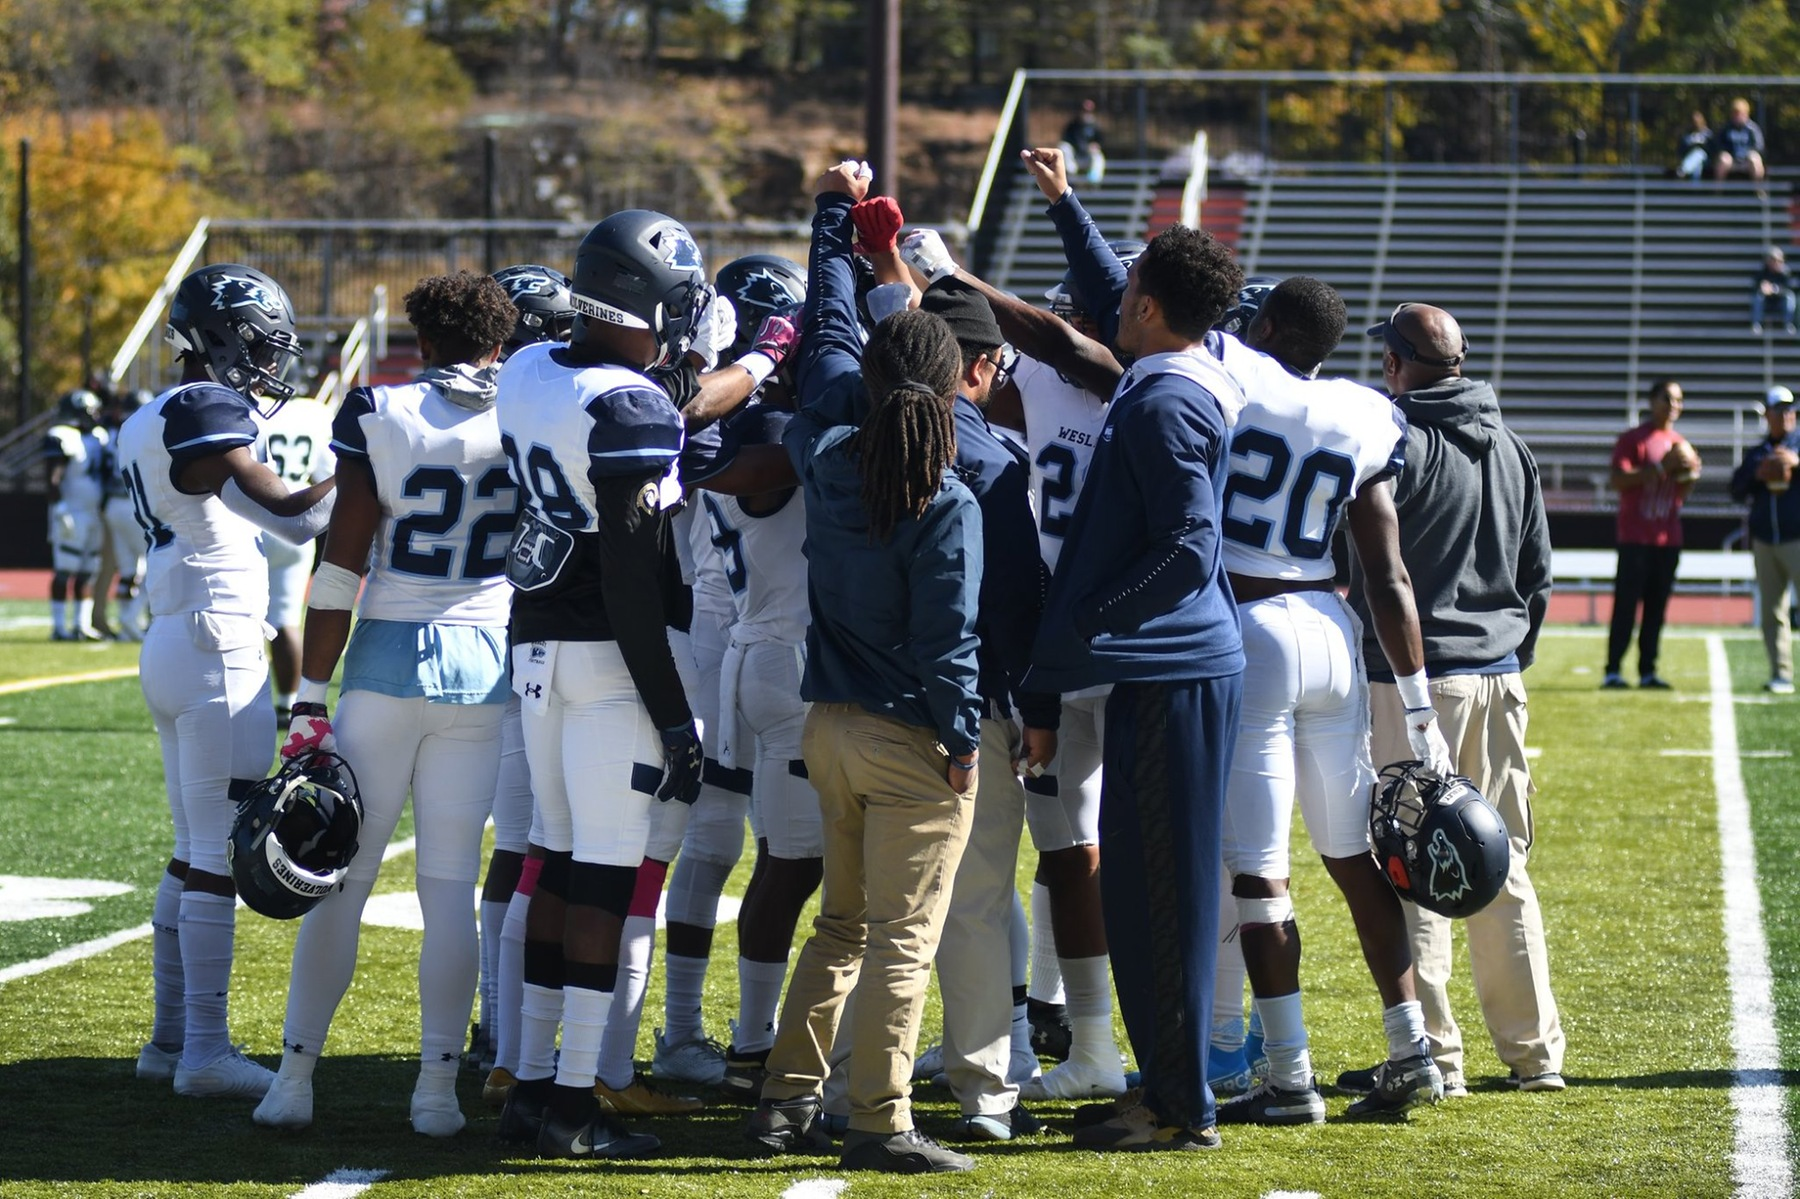 No. 15 Wesley Clinches Nail Biting Overtime Victory against Montclair on Homecoming Weekend